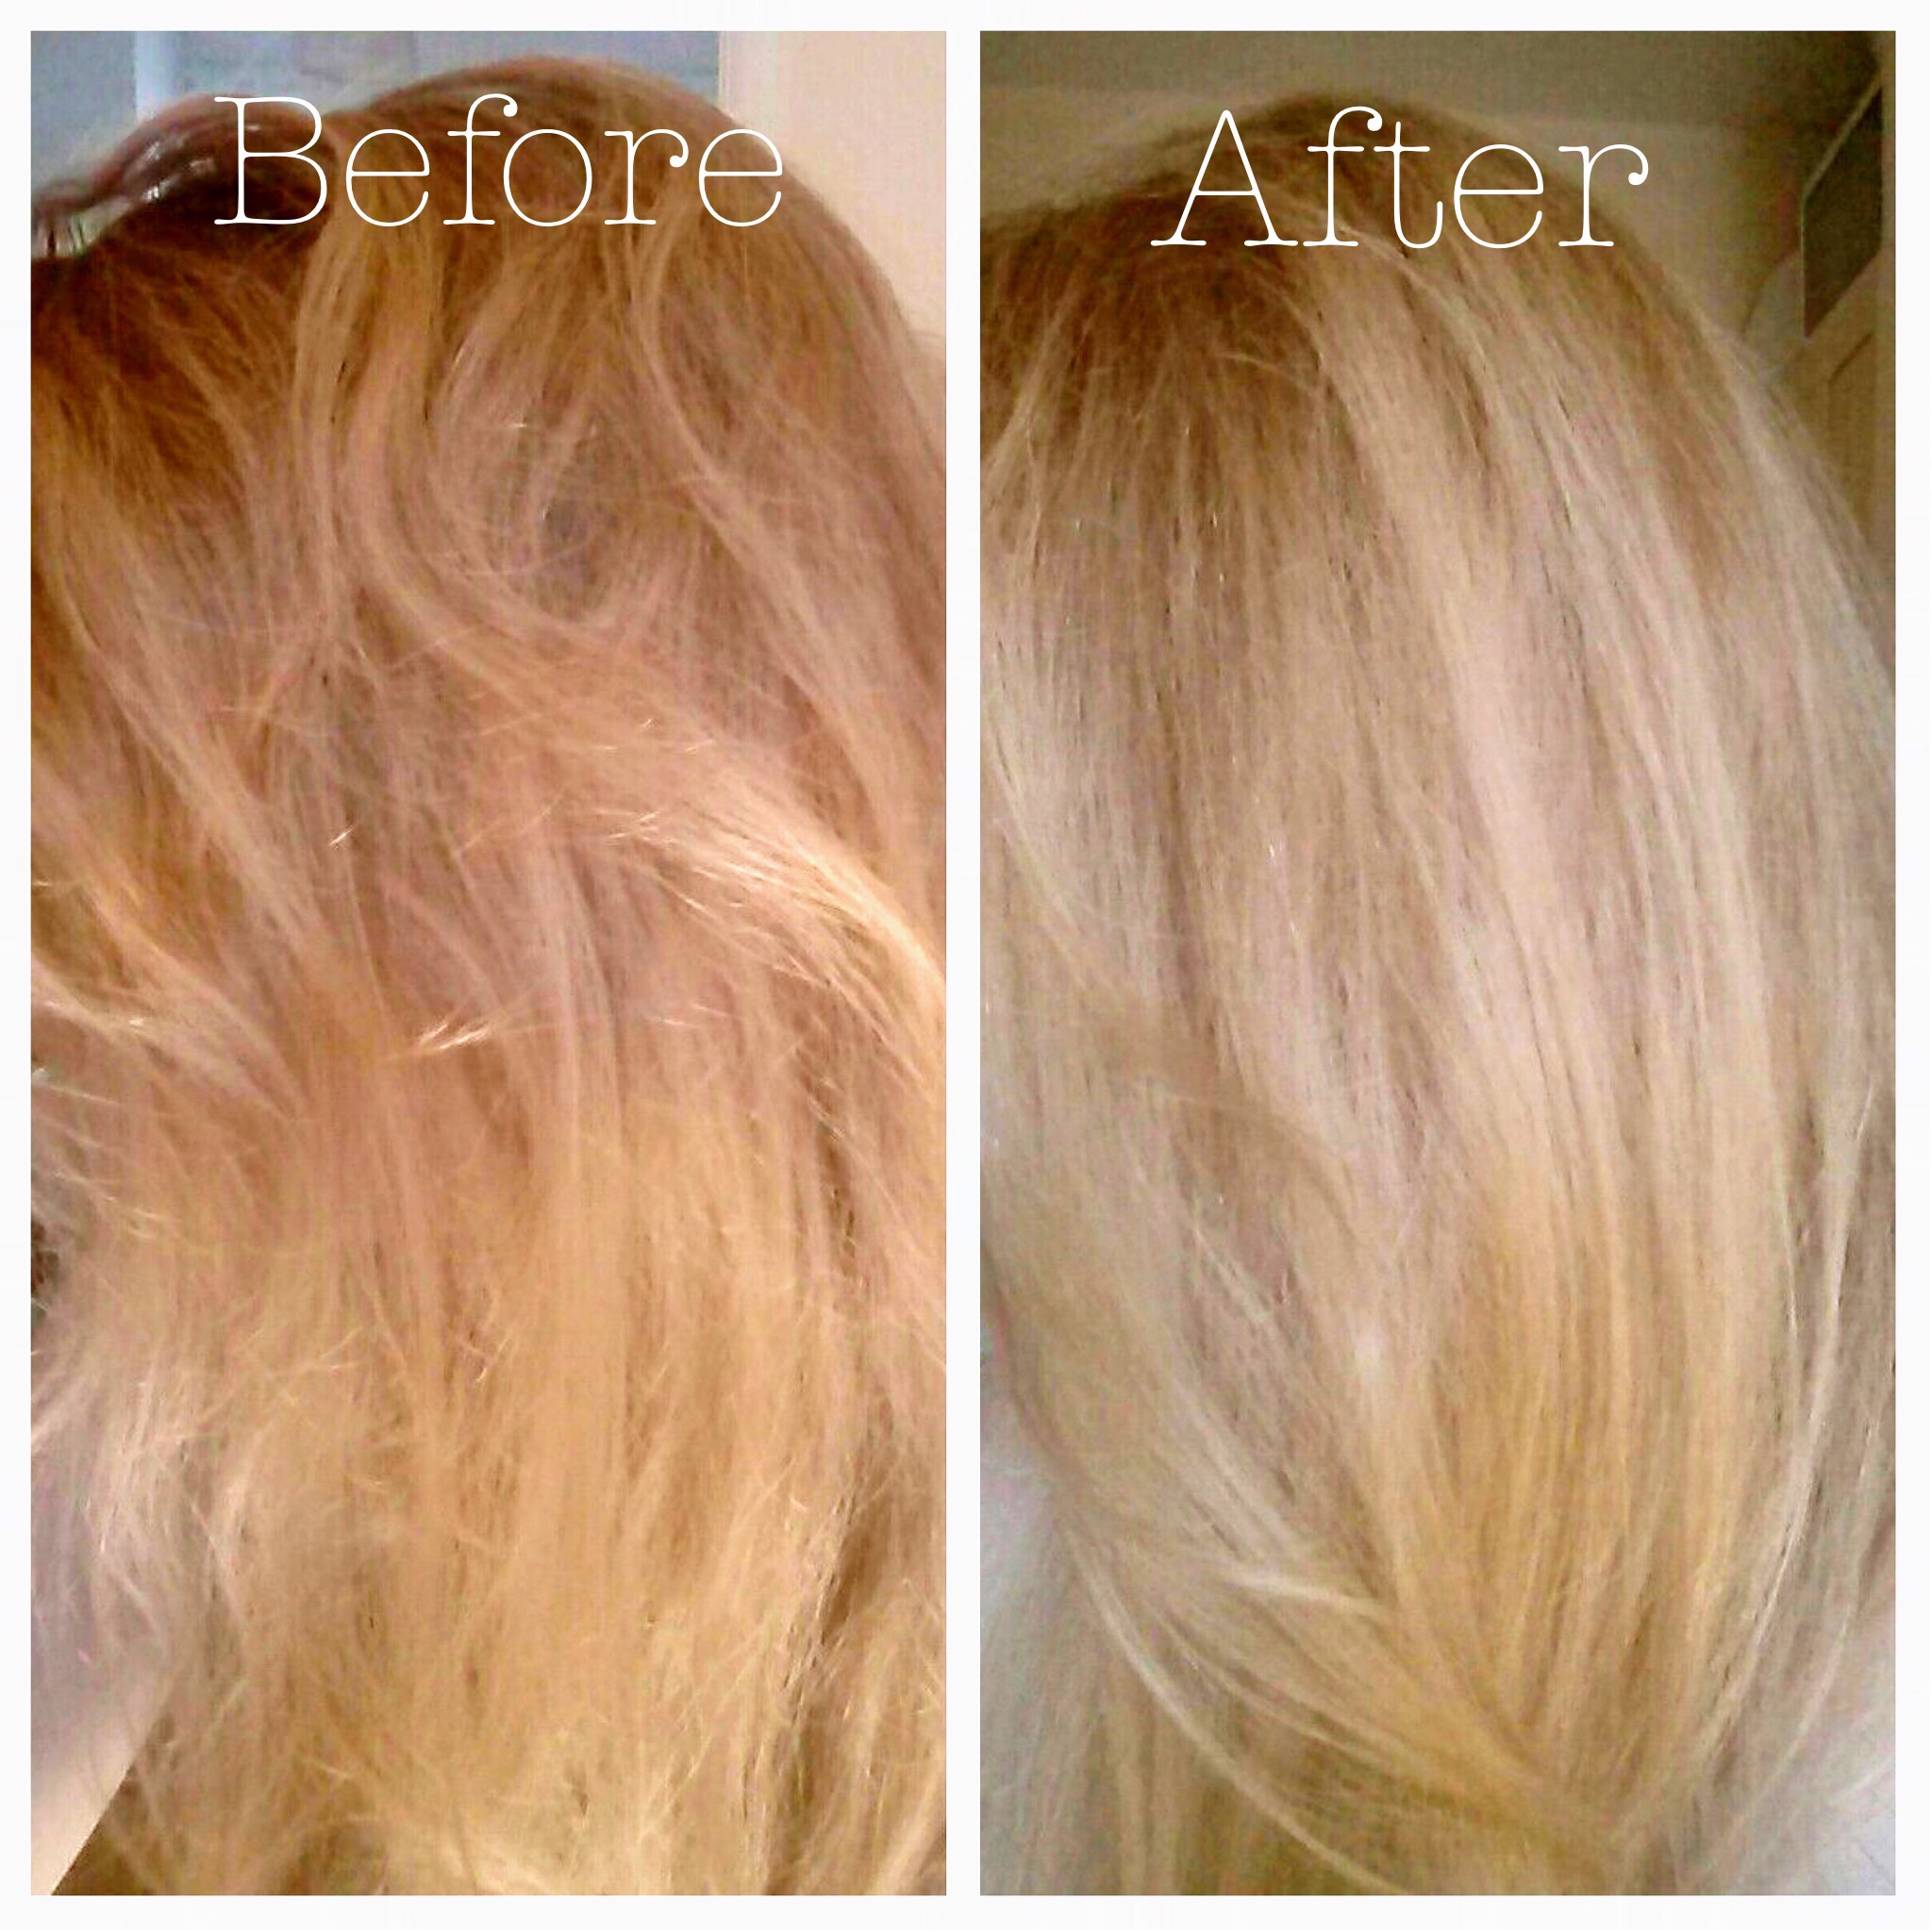 How To Care For Blonde Hair On A Budget Achieving Salon